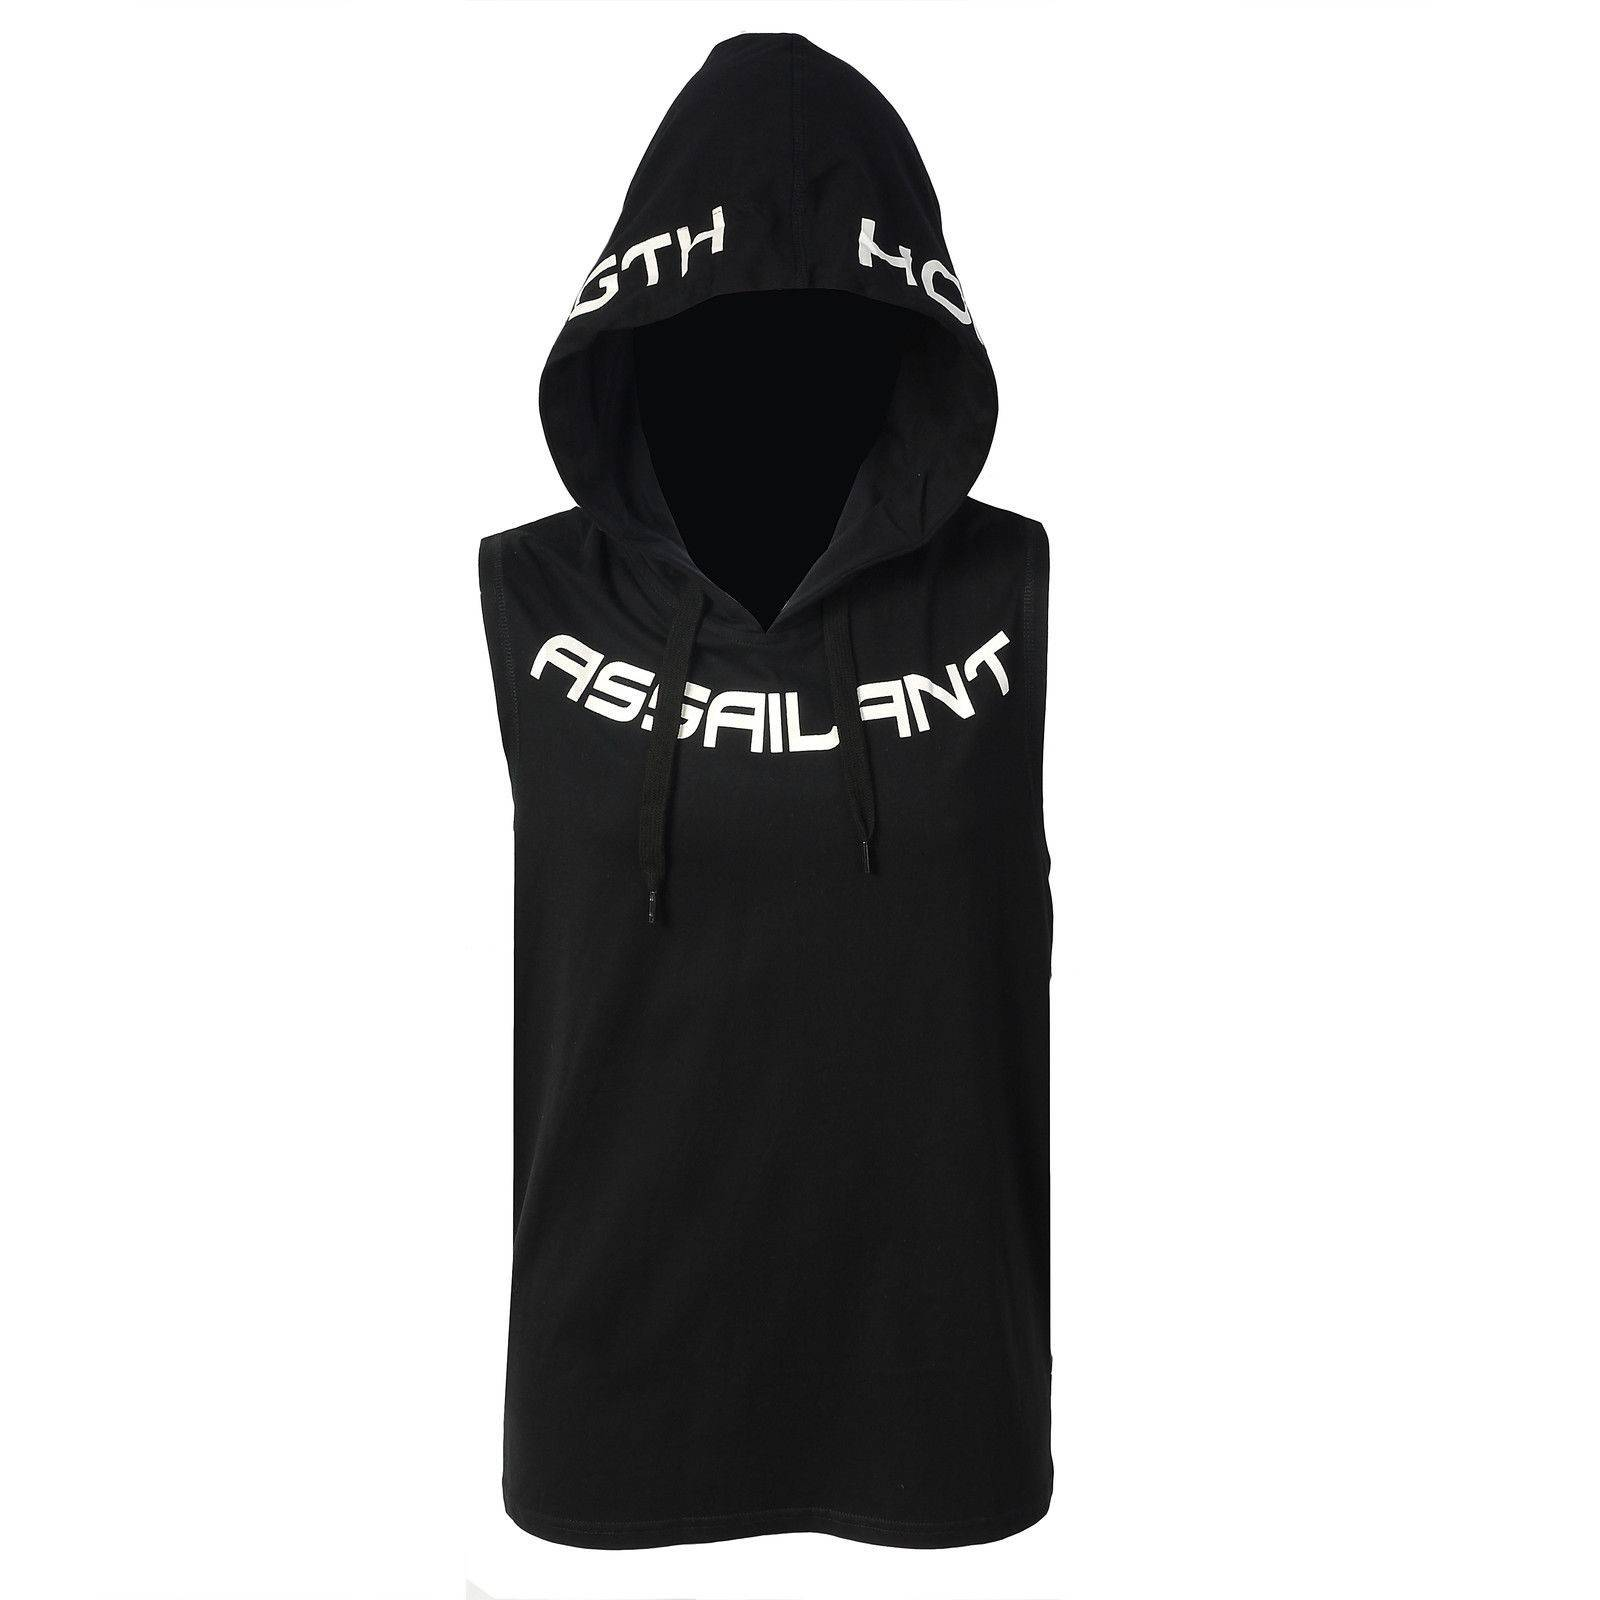 Black Slim Fit Sleeveless Hoodie Gym Wearing